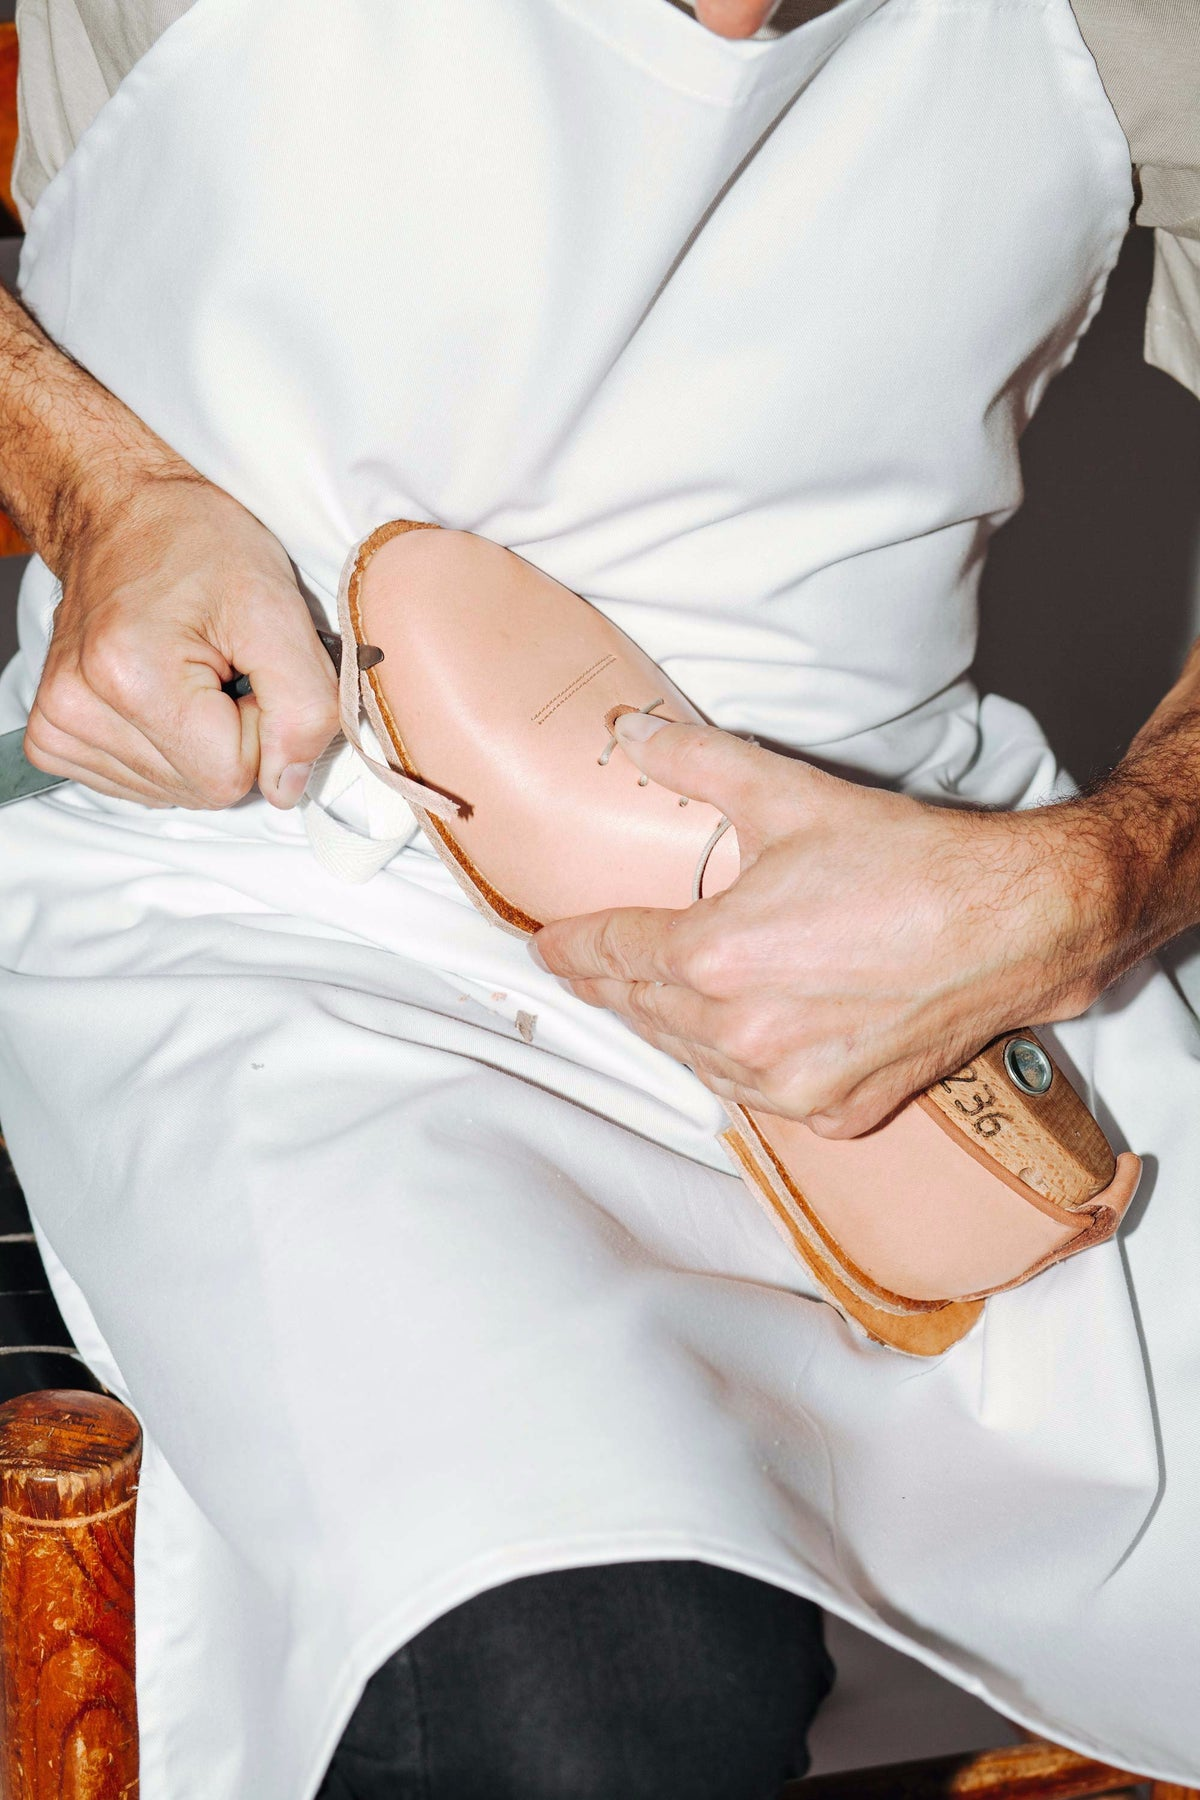 handcrafting a pair of soft wholecut natural leather shoes